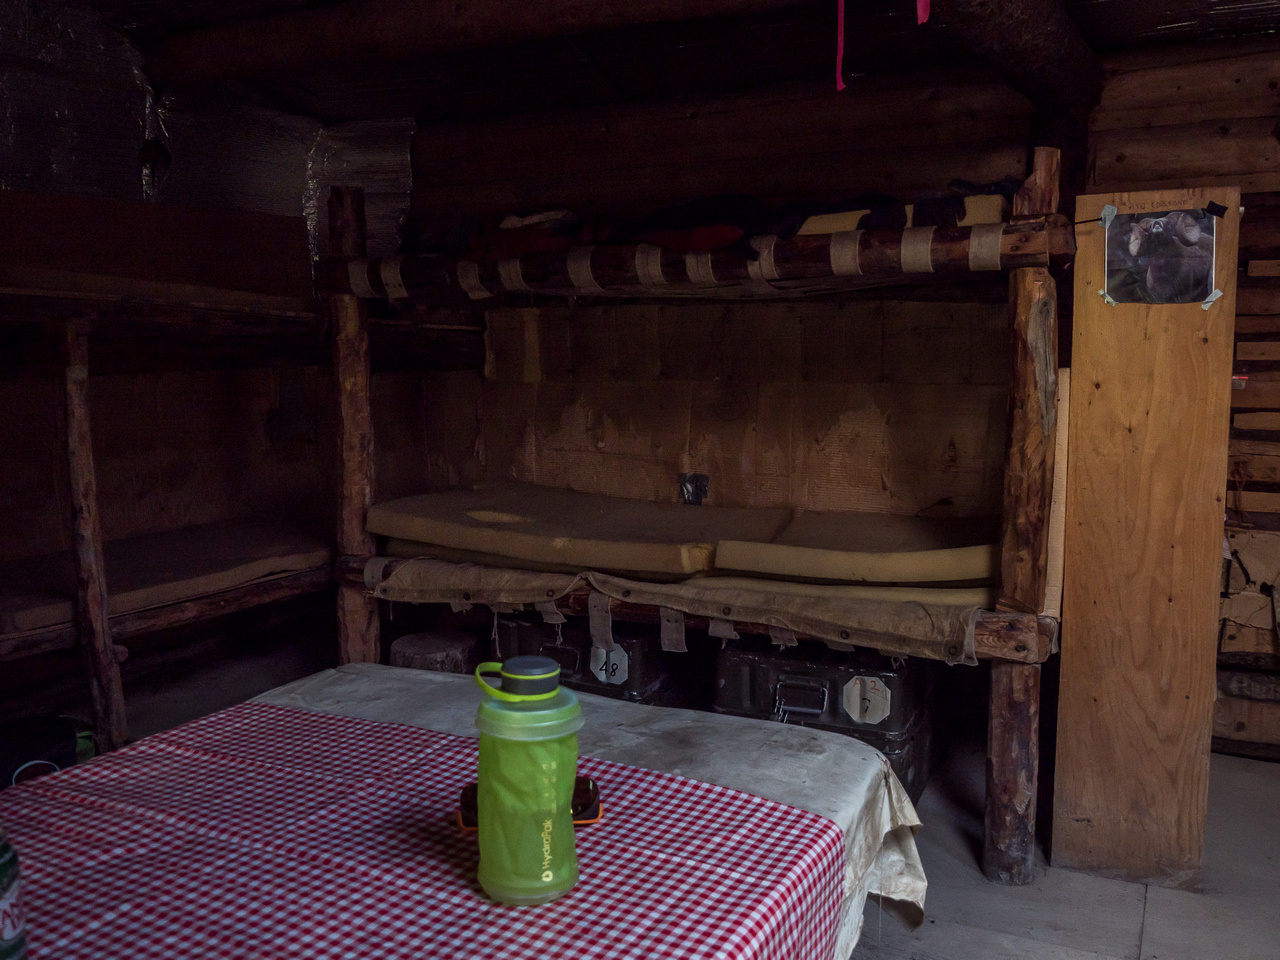 The cabin is cozy enough, but very rustic compared to many backcountry cabins you might be used to.